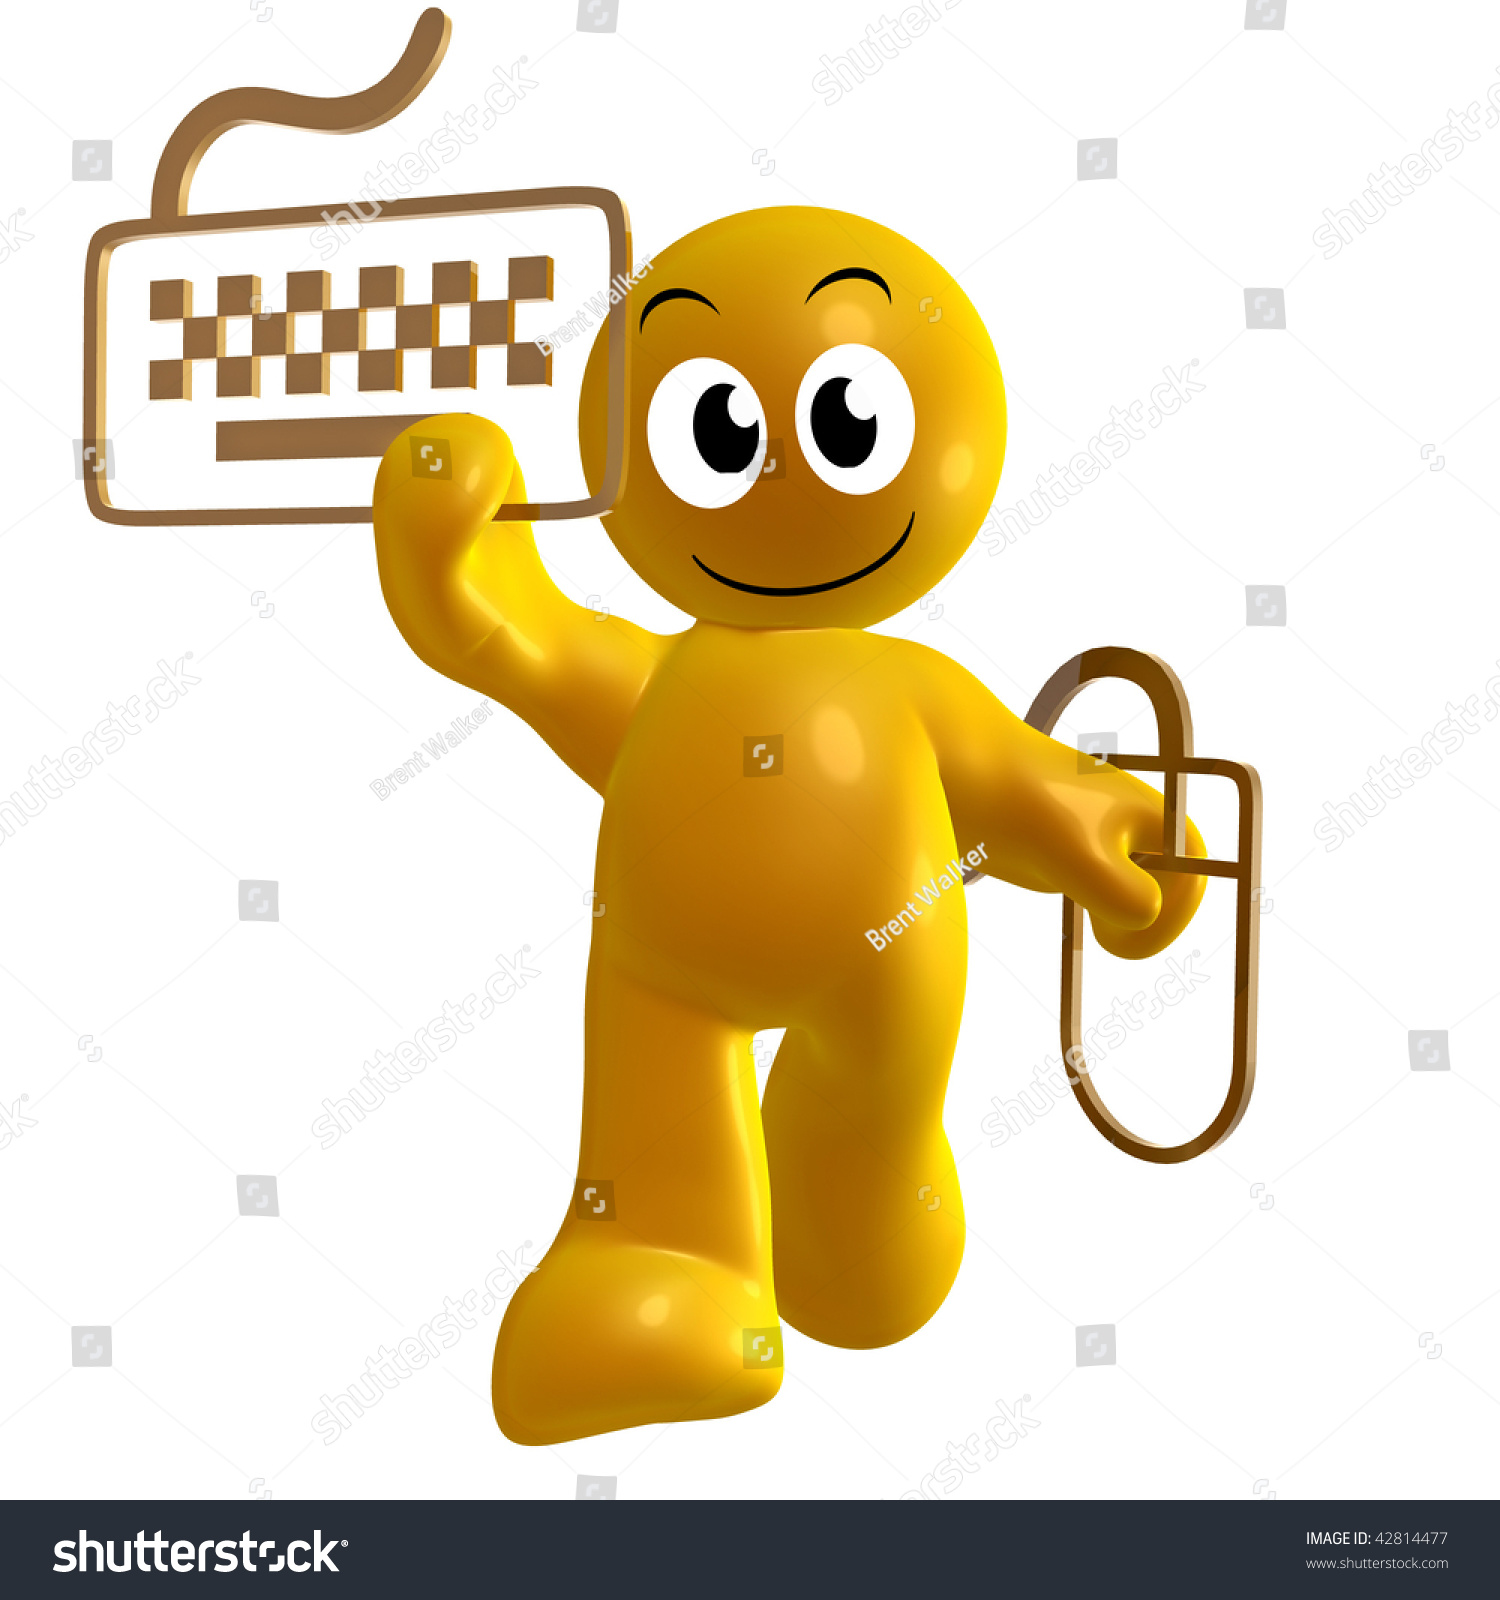 Funny 3d icon keyboard mouse symbol stock illustration 42814477 funny 3d icon with keyboard and mouse symbol biocorpaavc